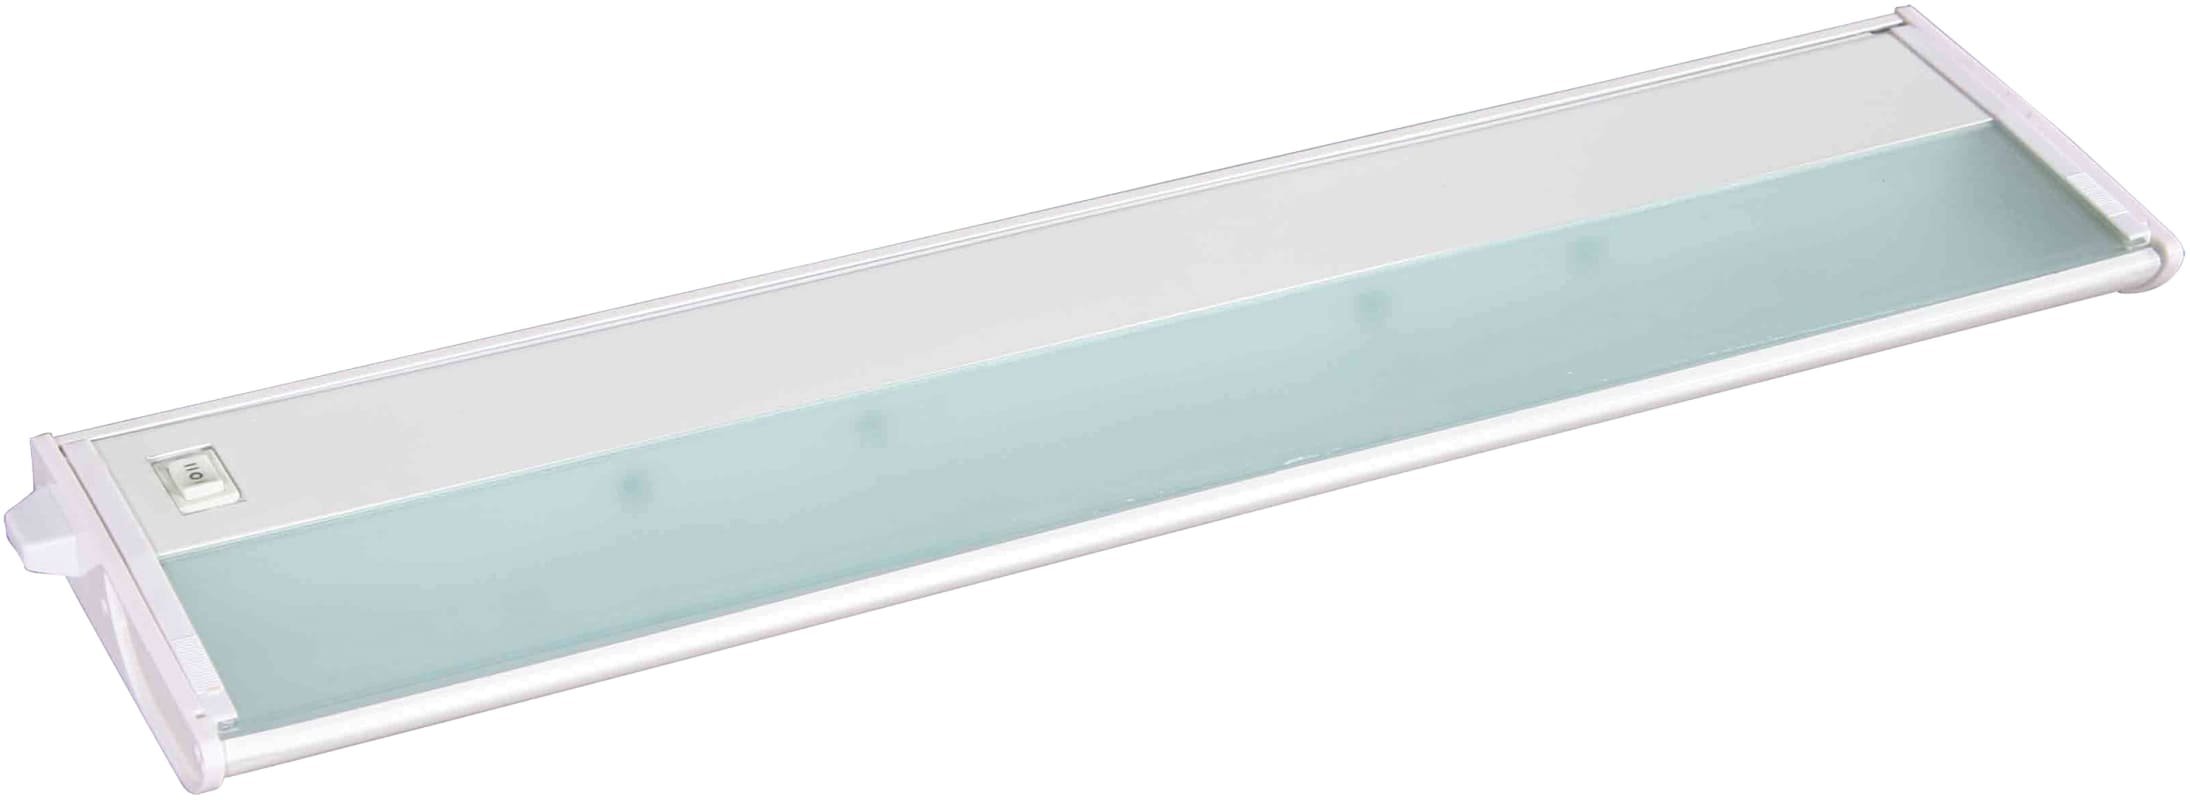 "Delacora DL-44682 21"" 3 Light Linkable Xenon Under Cabinet Light from"